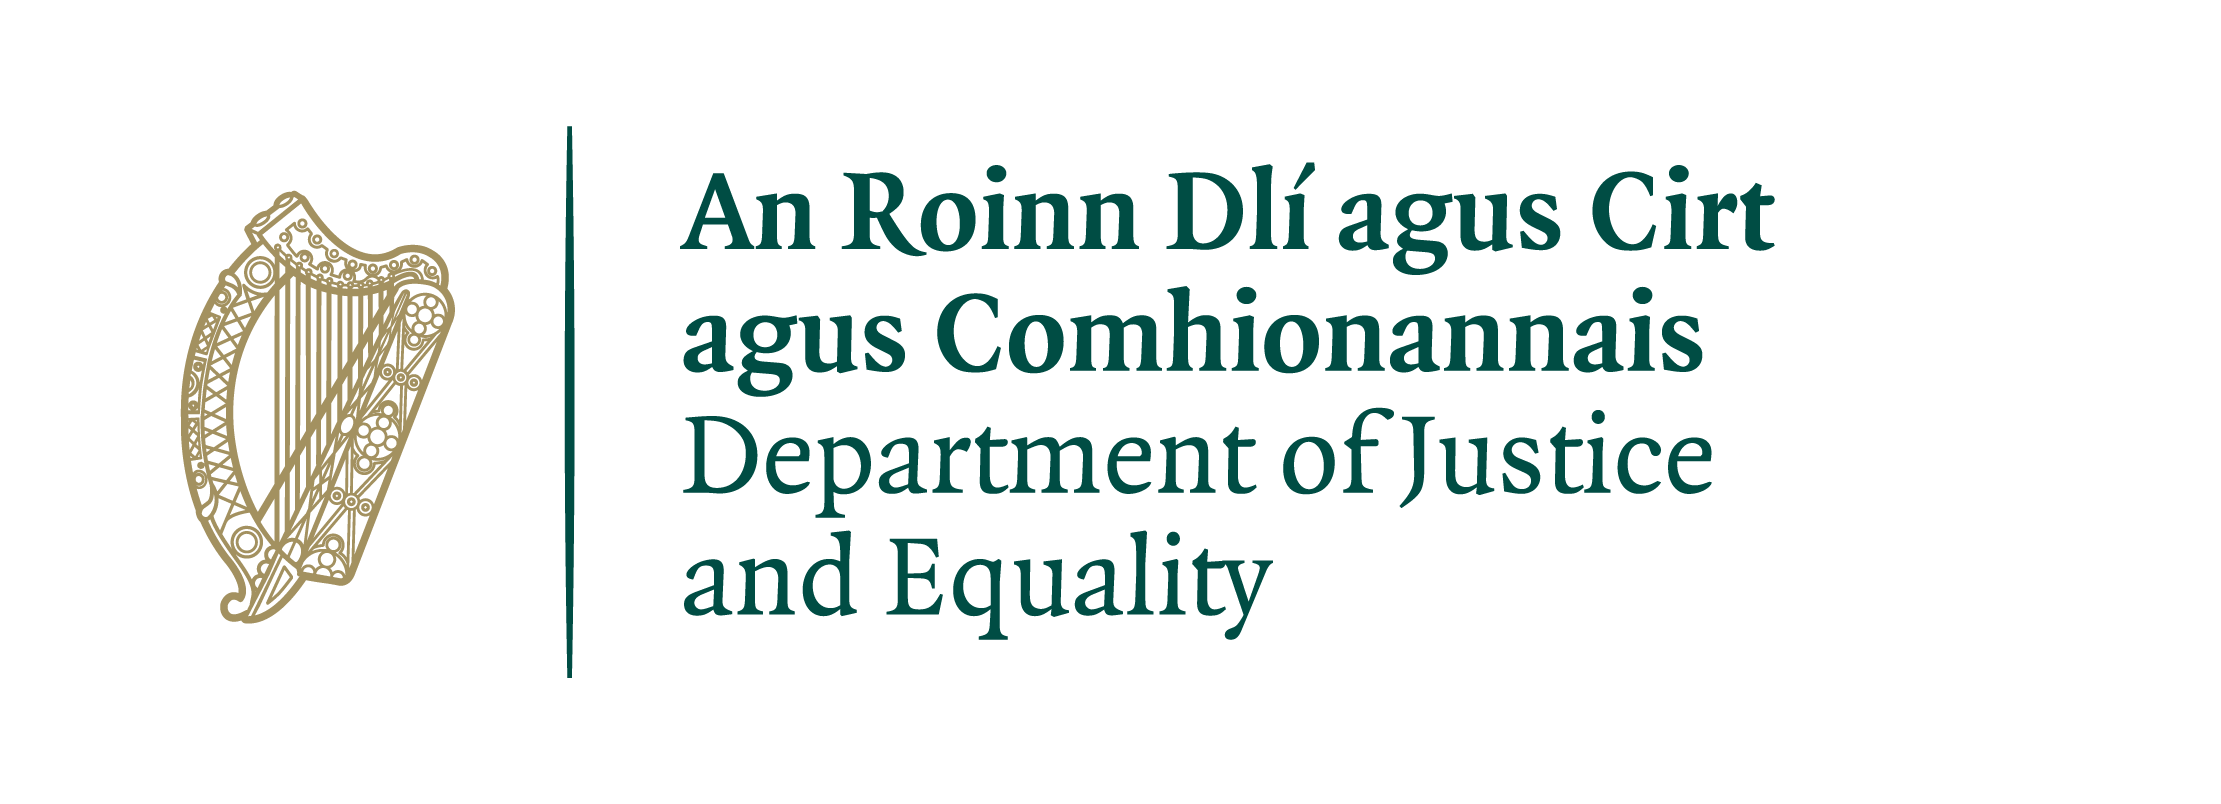 Irish_Department_of_Justice_and_Equality